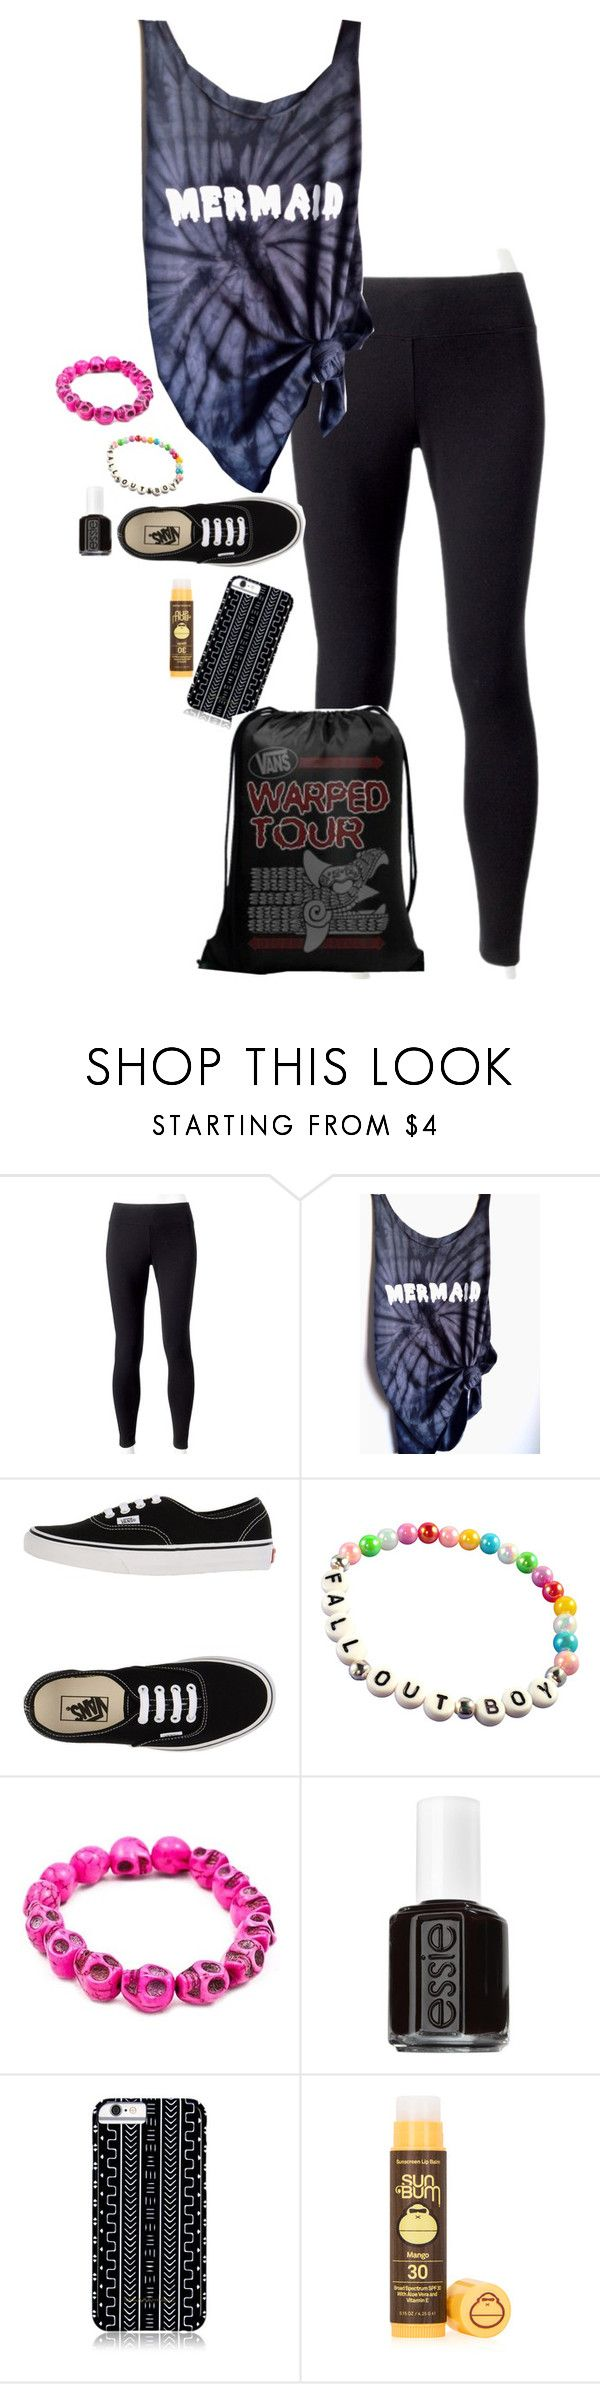 """""""feel good"""" by un-iversal ❤ liked on Polyvore featuring Jockey, Vans, Essie, Savannah Hayes and Sun Bum"""